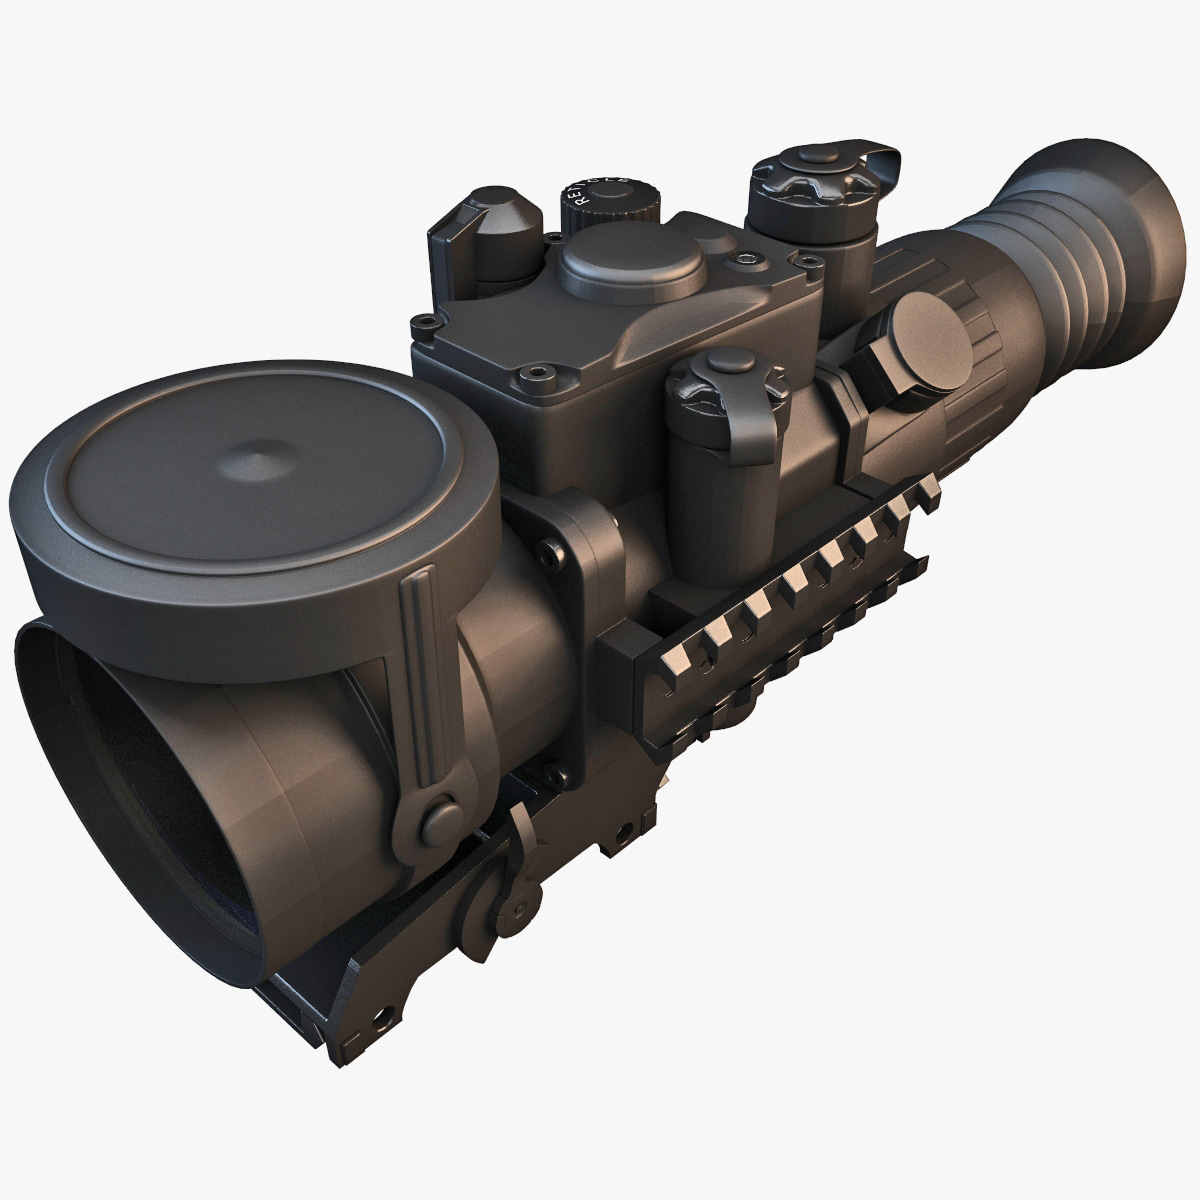 Night_Vision_Rifle_Scope_Yukon_Phantom_4x60_000.jpg